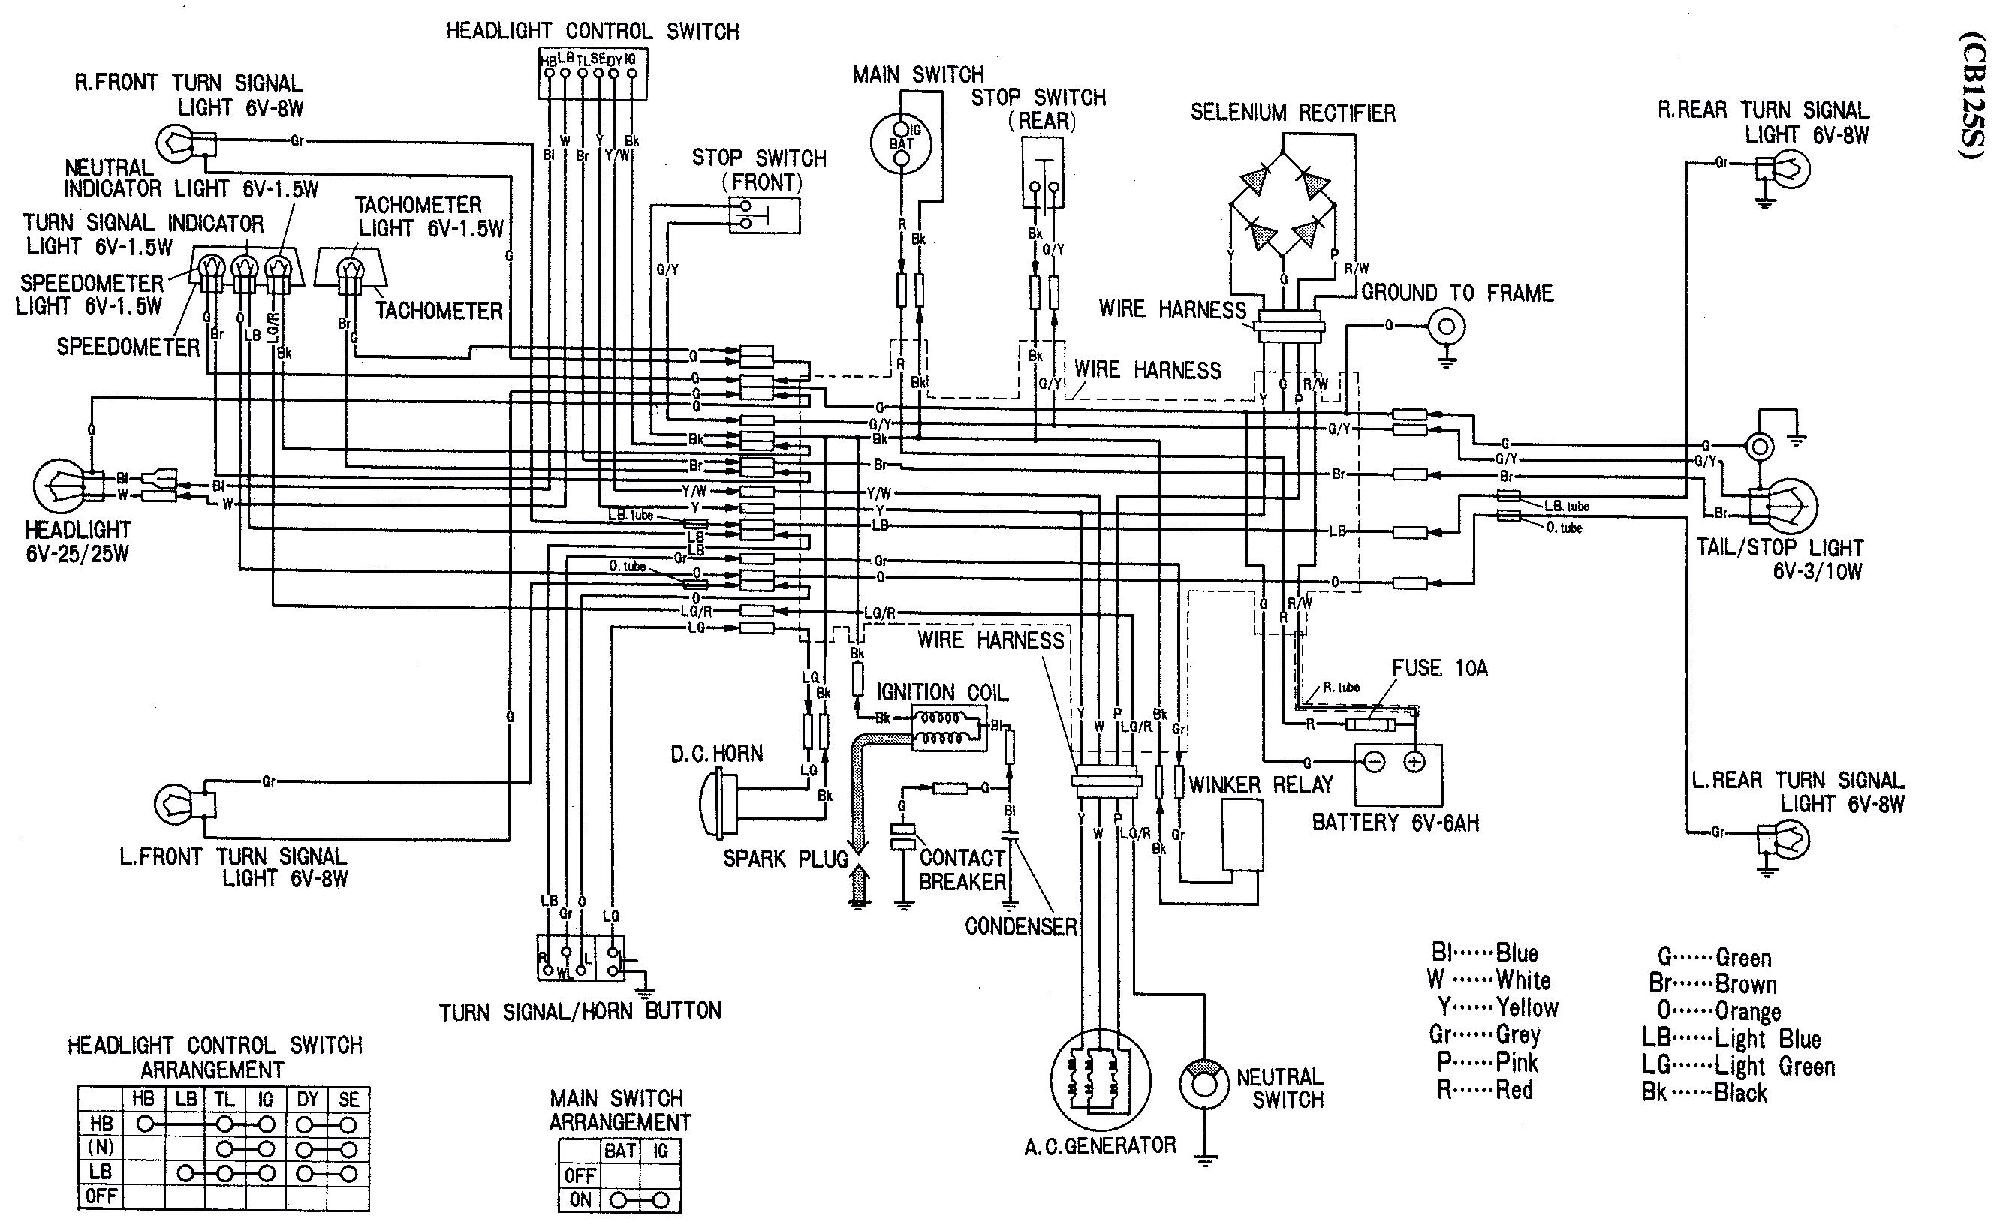 Honda Cb Wiring Diagram on honda 450r wiring diagram, honda atv wiring diagram, honda 185s wiring diagram, honda elite 80 wiring diagram, honda c 200 wiring diagram,